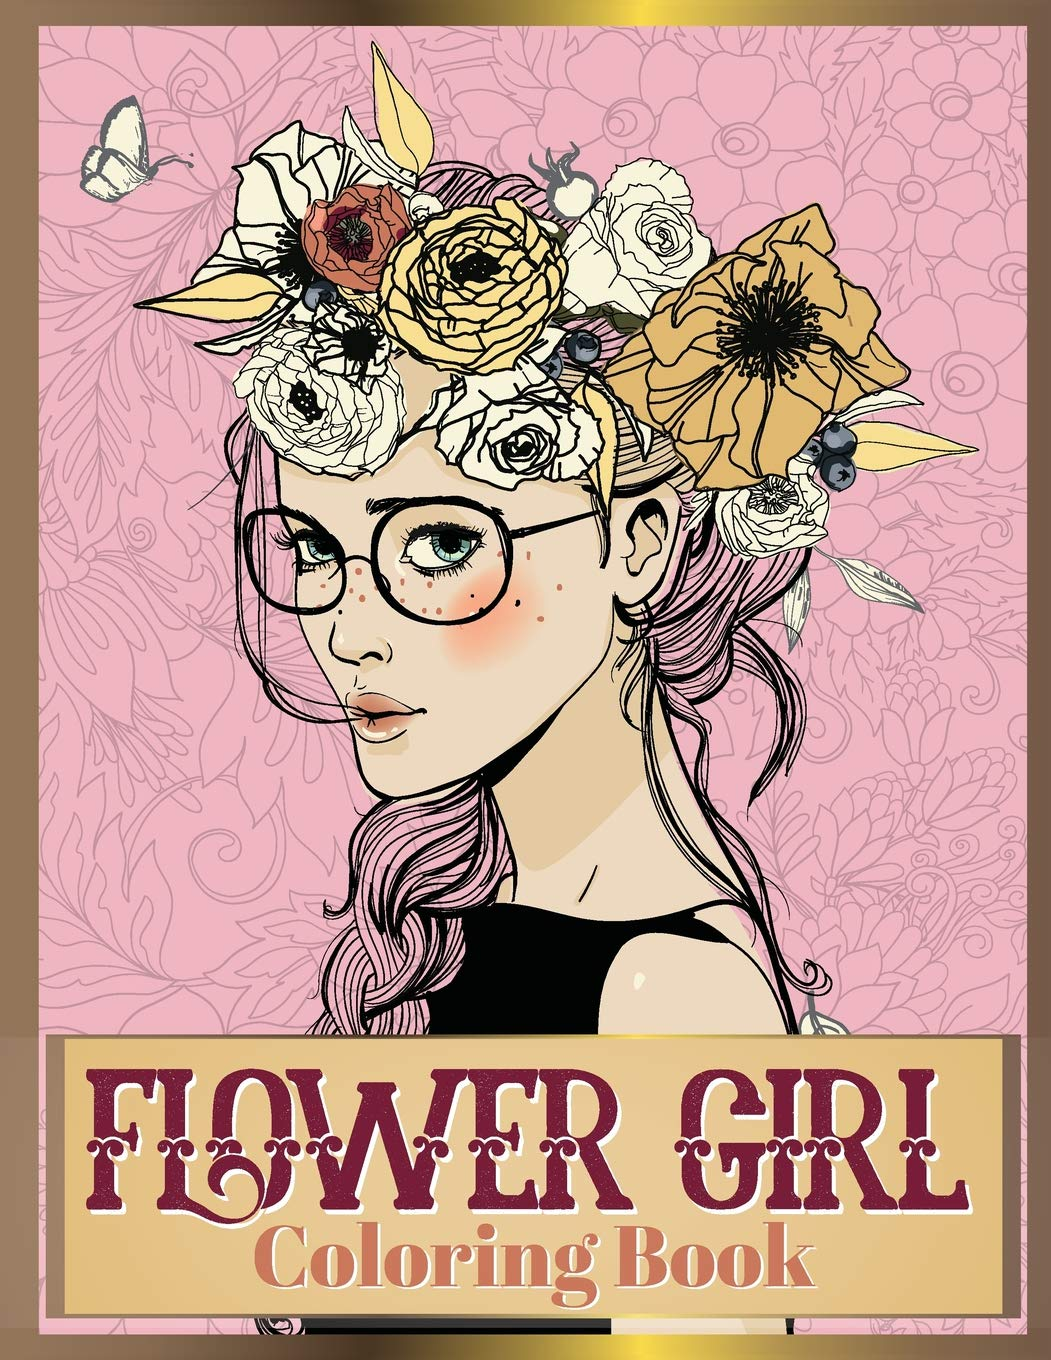 Amazon.com: Flower Girl Coloring Book: Beautiful Floral & Girl ...